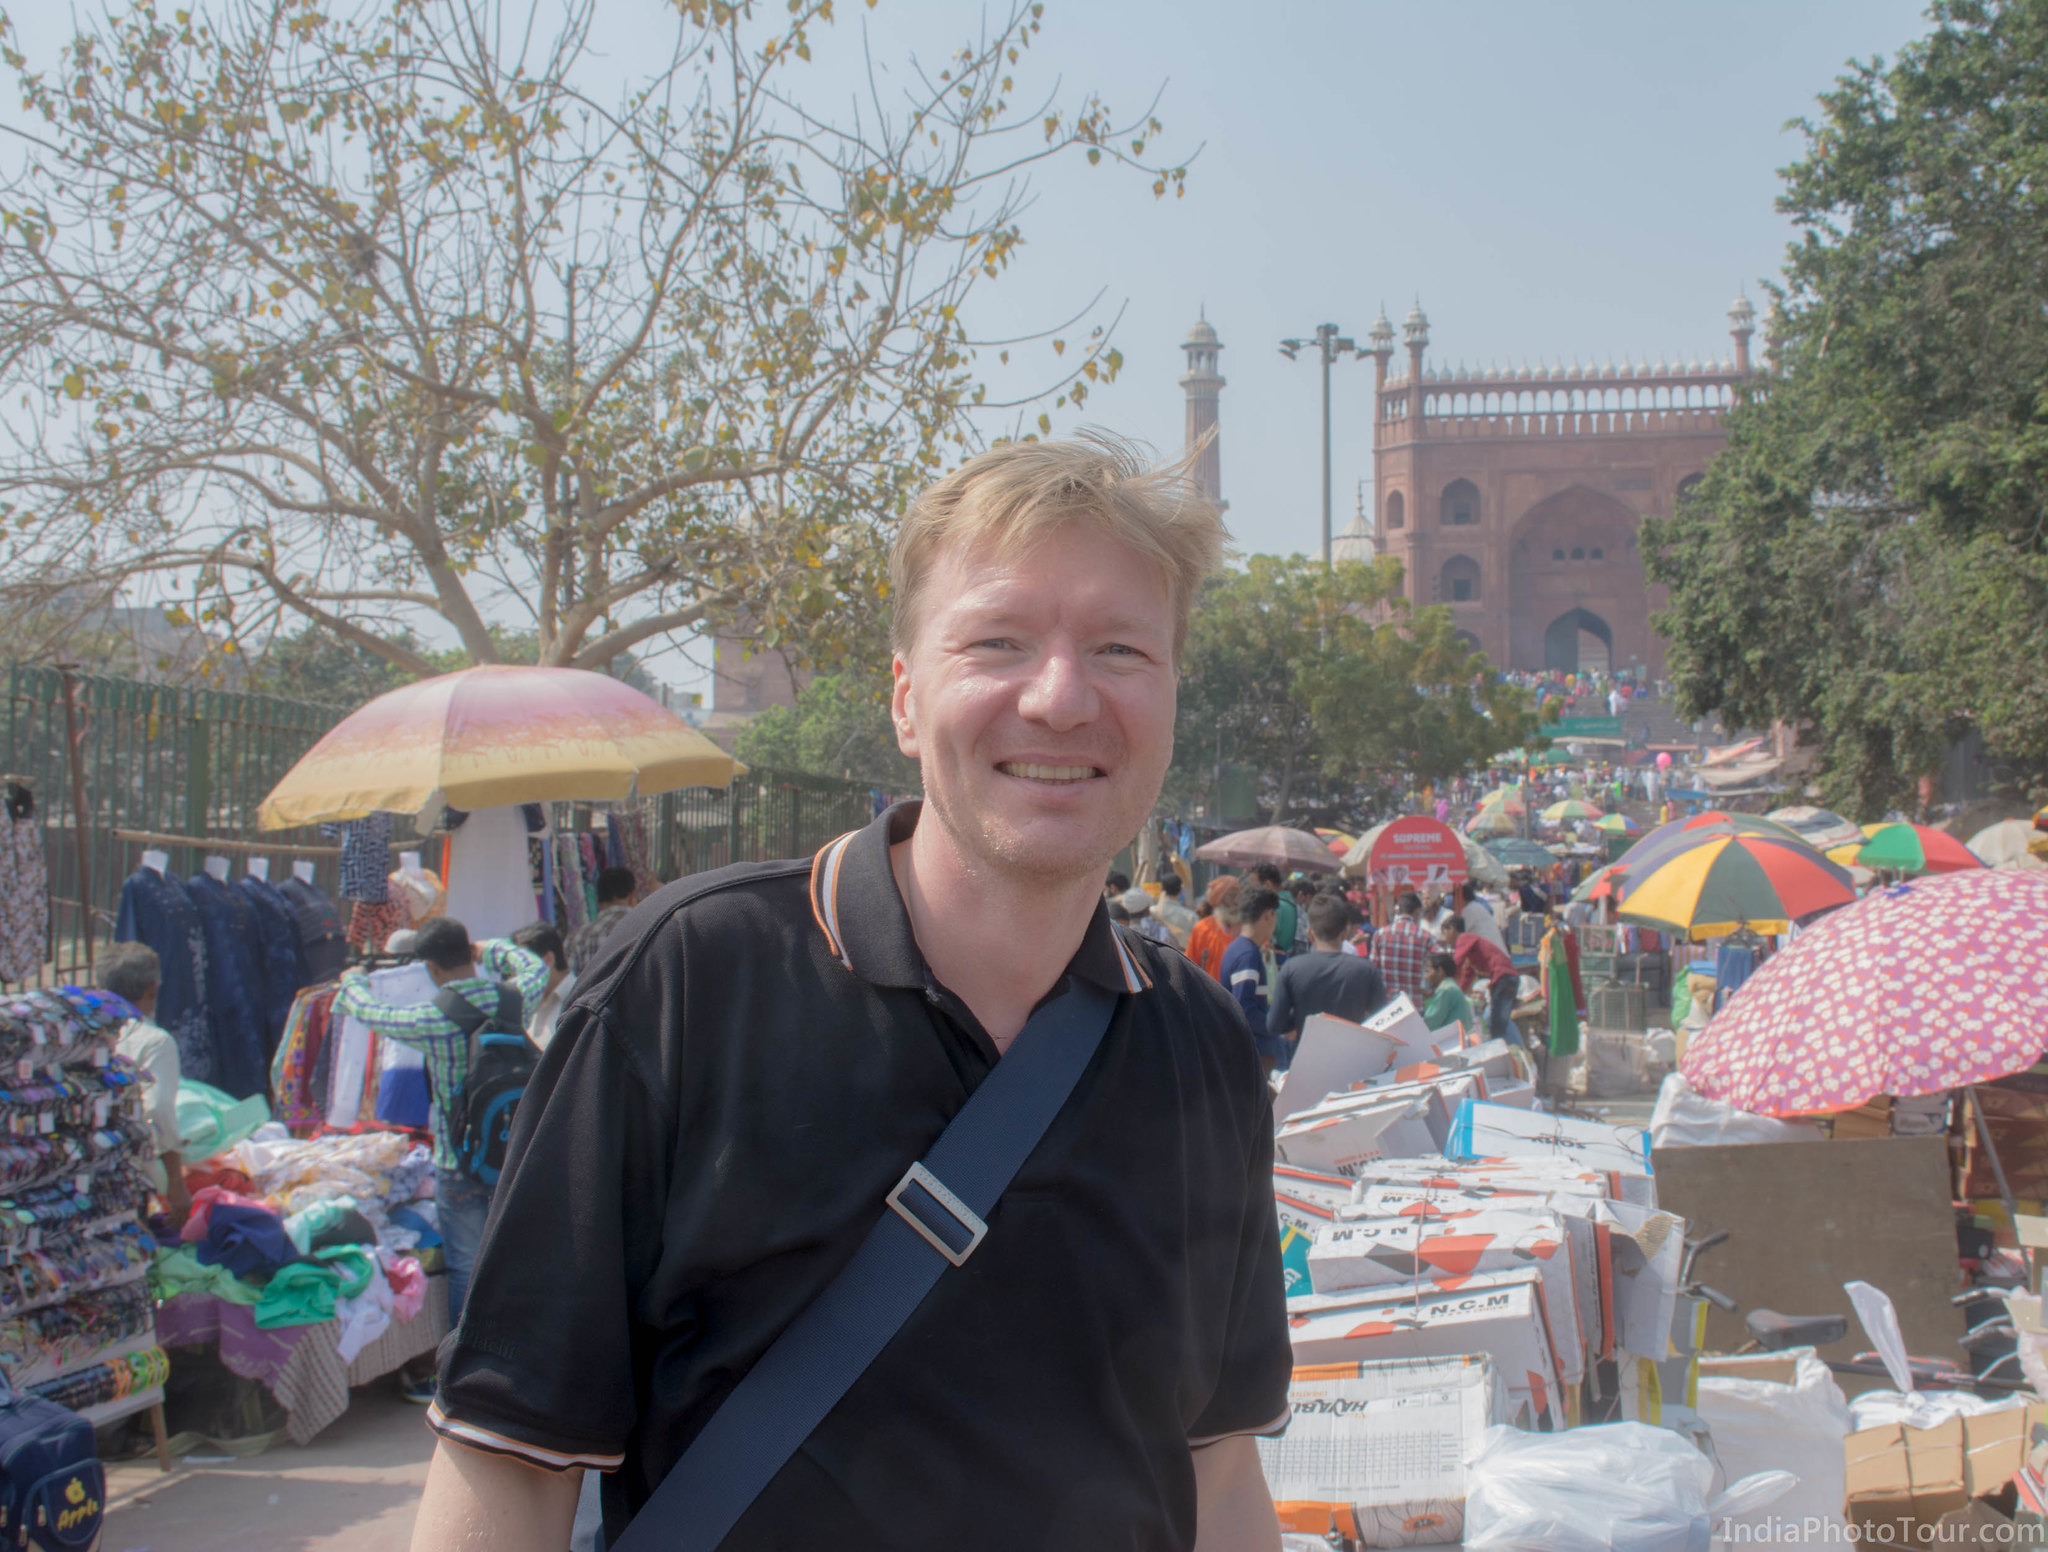 Lars posing in the street market in front of Jama Masjid in Old Delhi